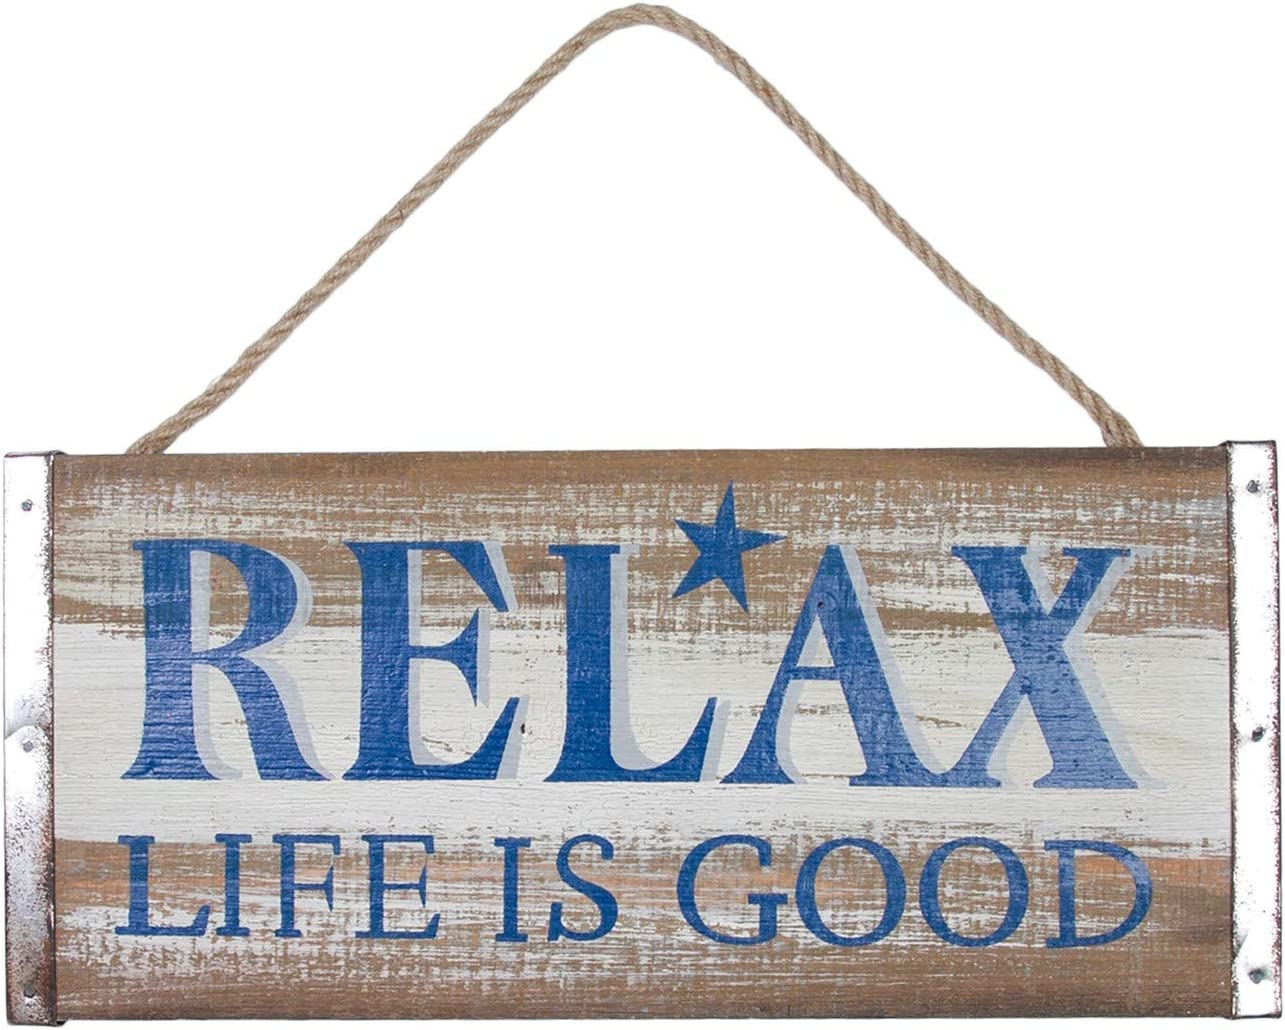 Beachcombers Relax Life is Good Coastal Plaque Sign Wall Hanging Decor Decoration for The Beach Blue